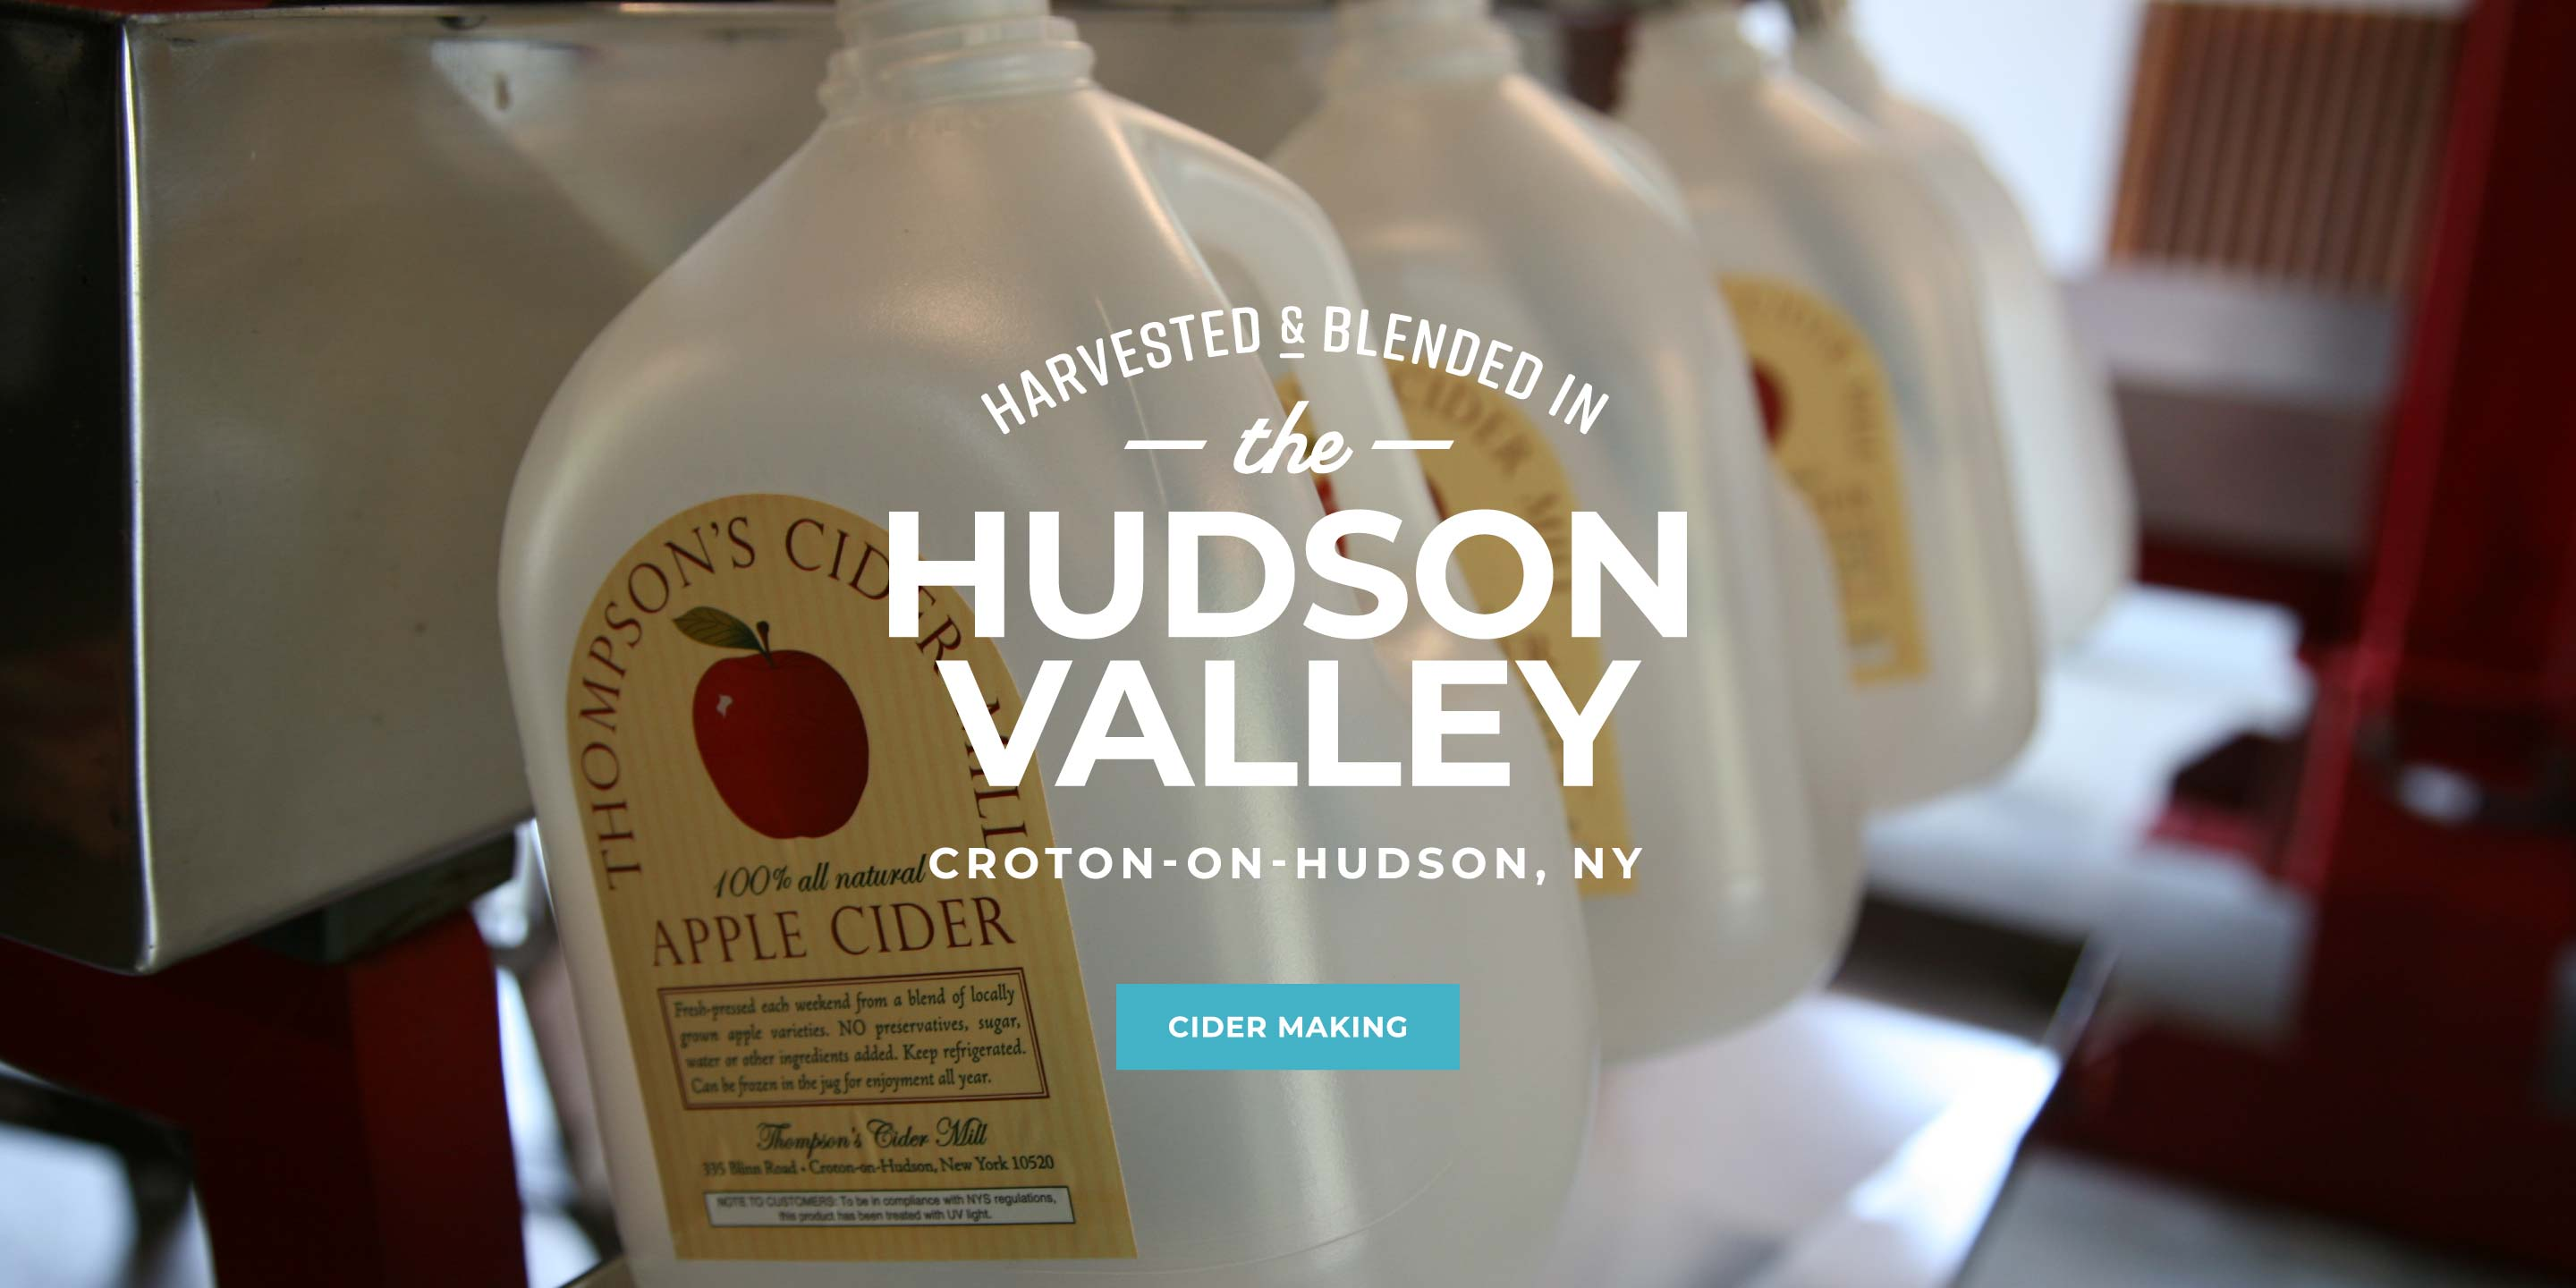 Harvested and Blended in the Hudson Valley